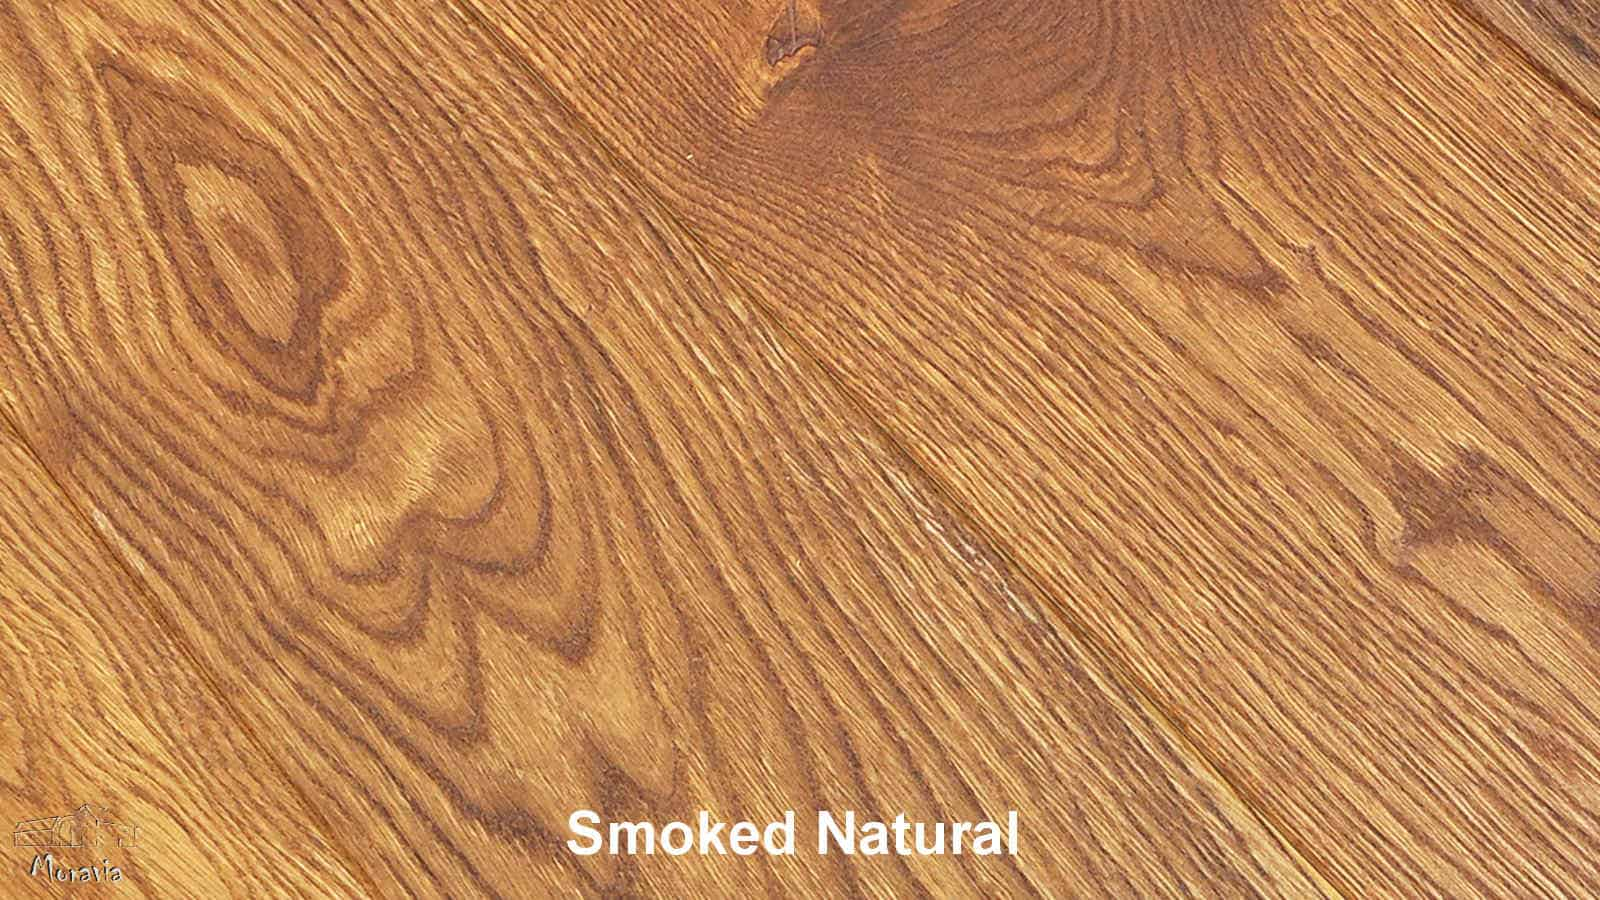 Kolekcja: ESCO Moravia, Kolor: Smoked Natural